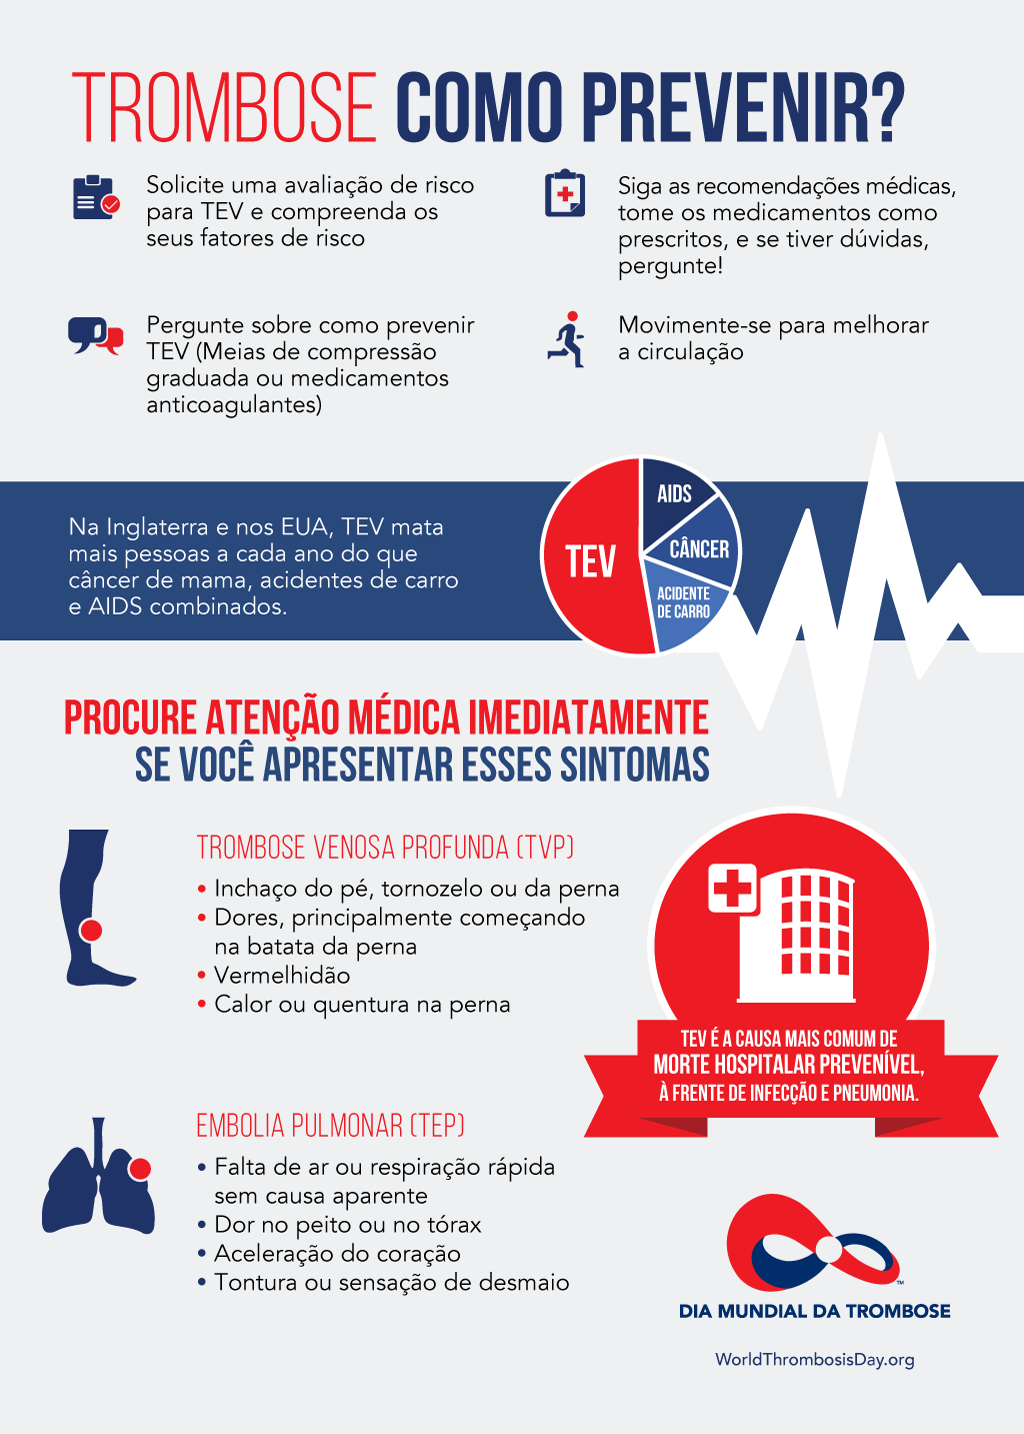 Know-Thrombosis-Hospital-Associated-Infographic_2